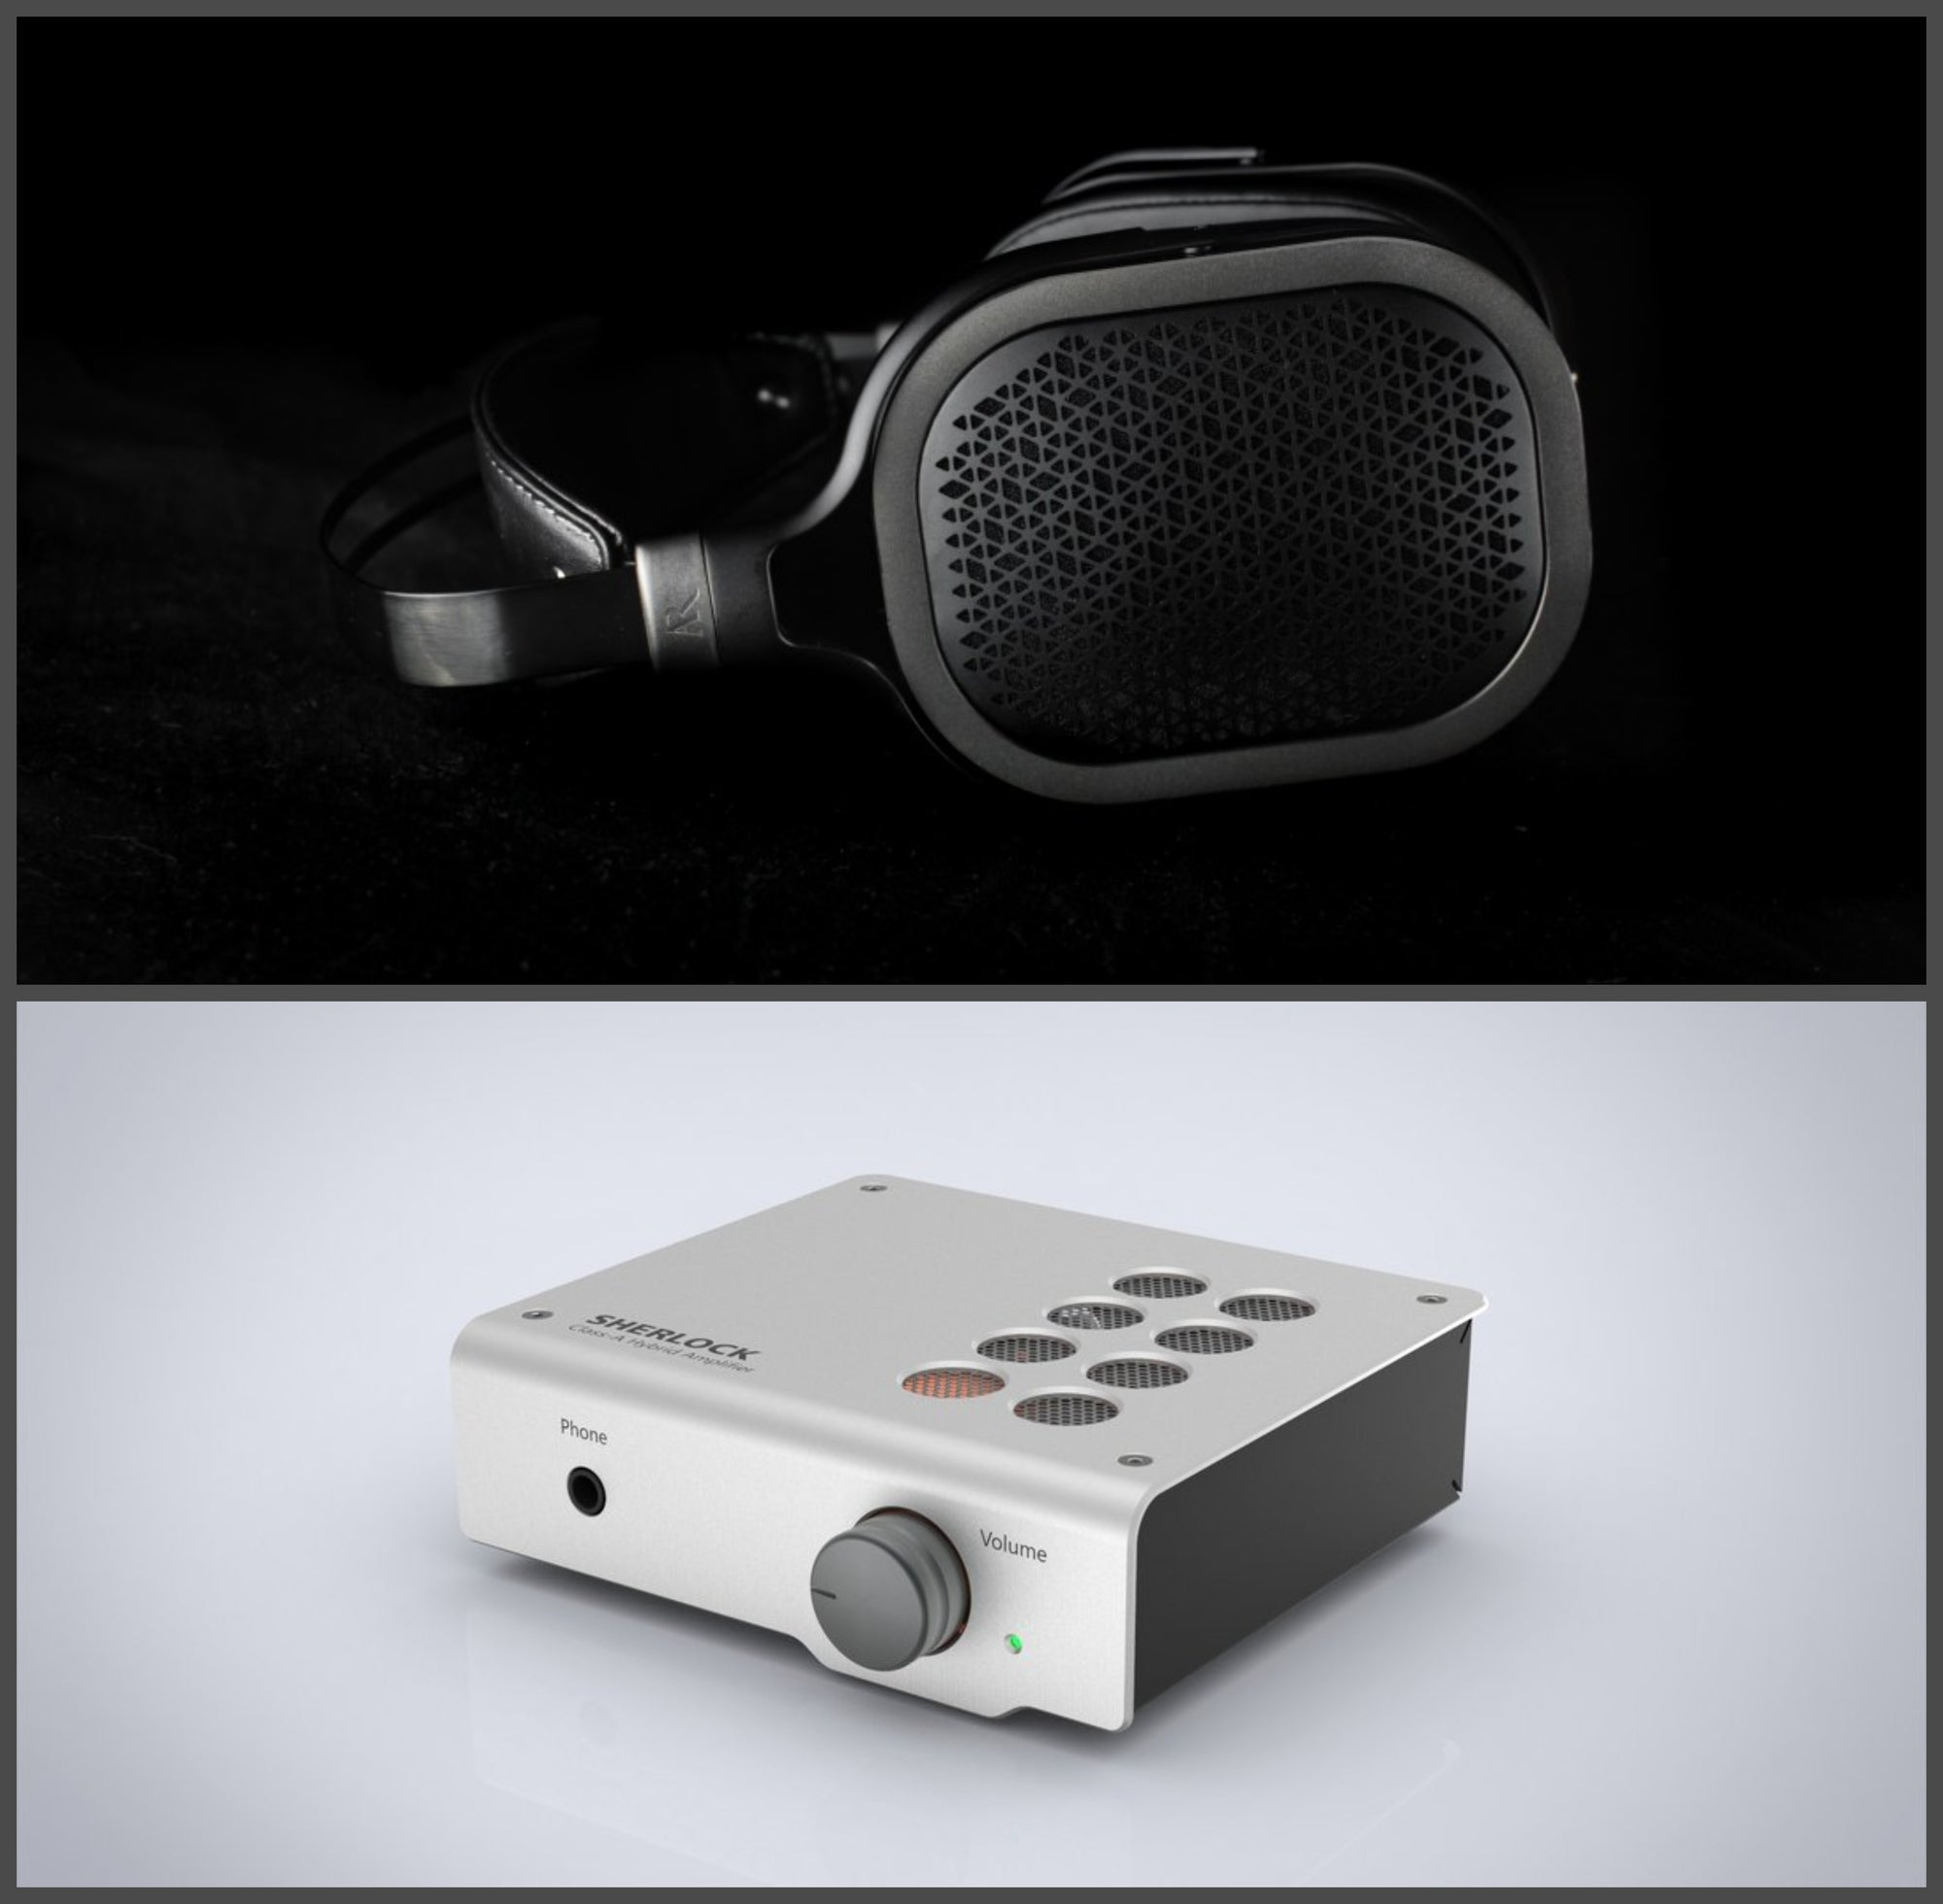 [COMBO] Acoustic Research AR-H1 Headphones + Elemental Sherlock Tube Amplifier